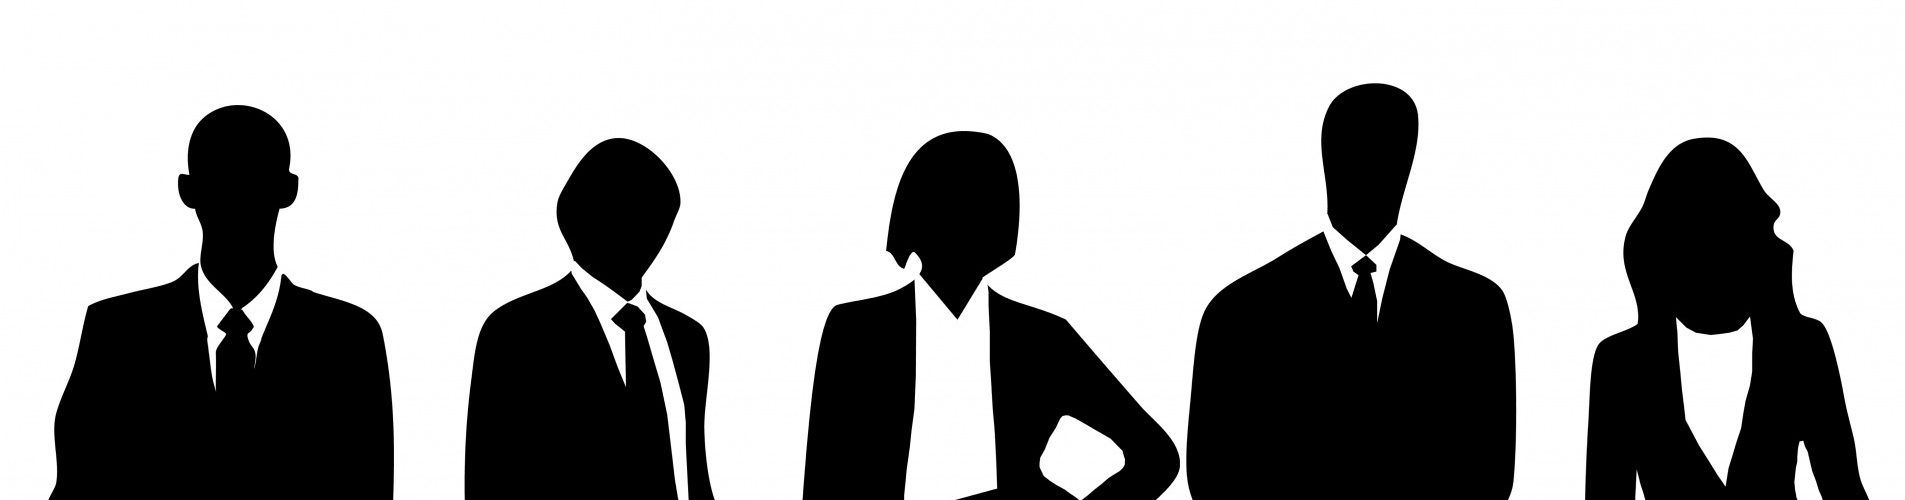 business people banner image